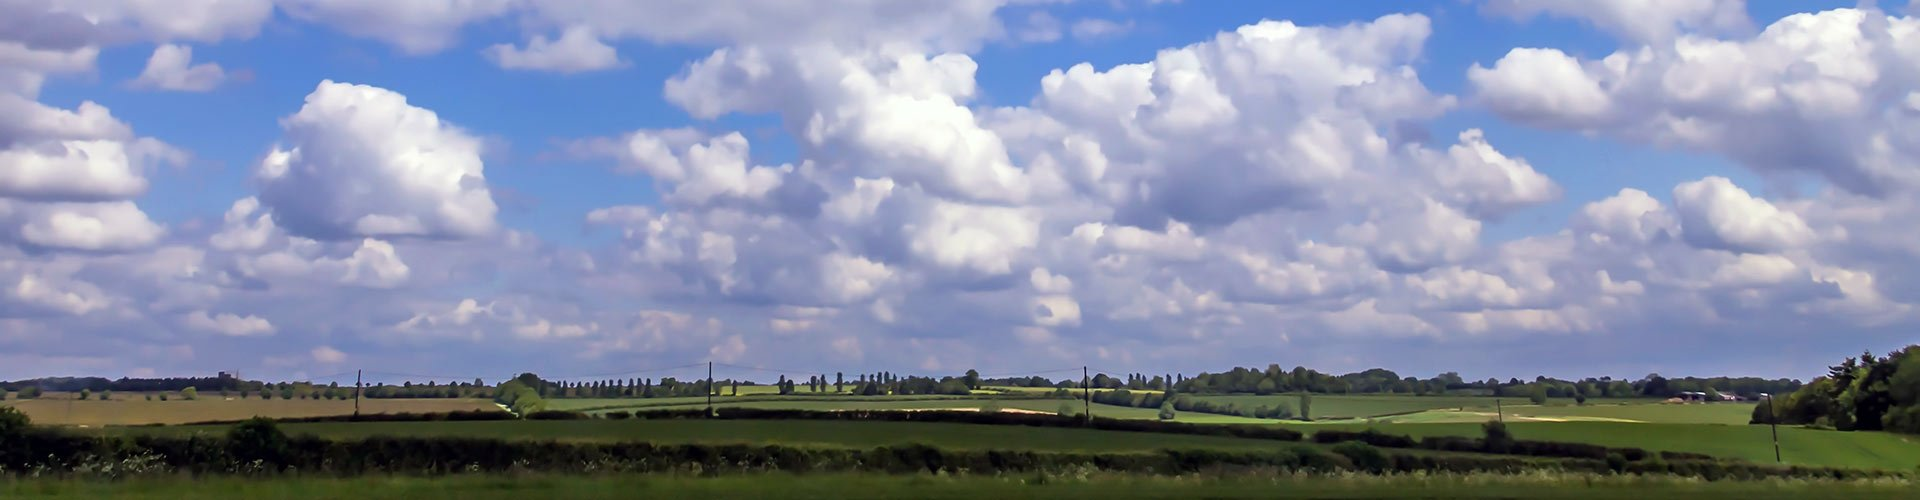 English summer cloudy day landscape along the highway A44